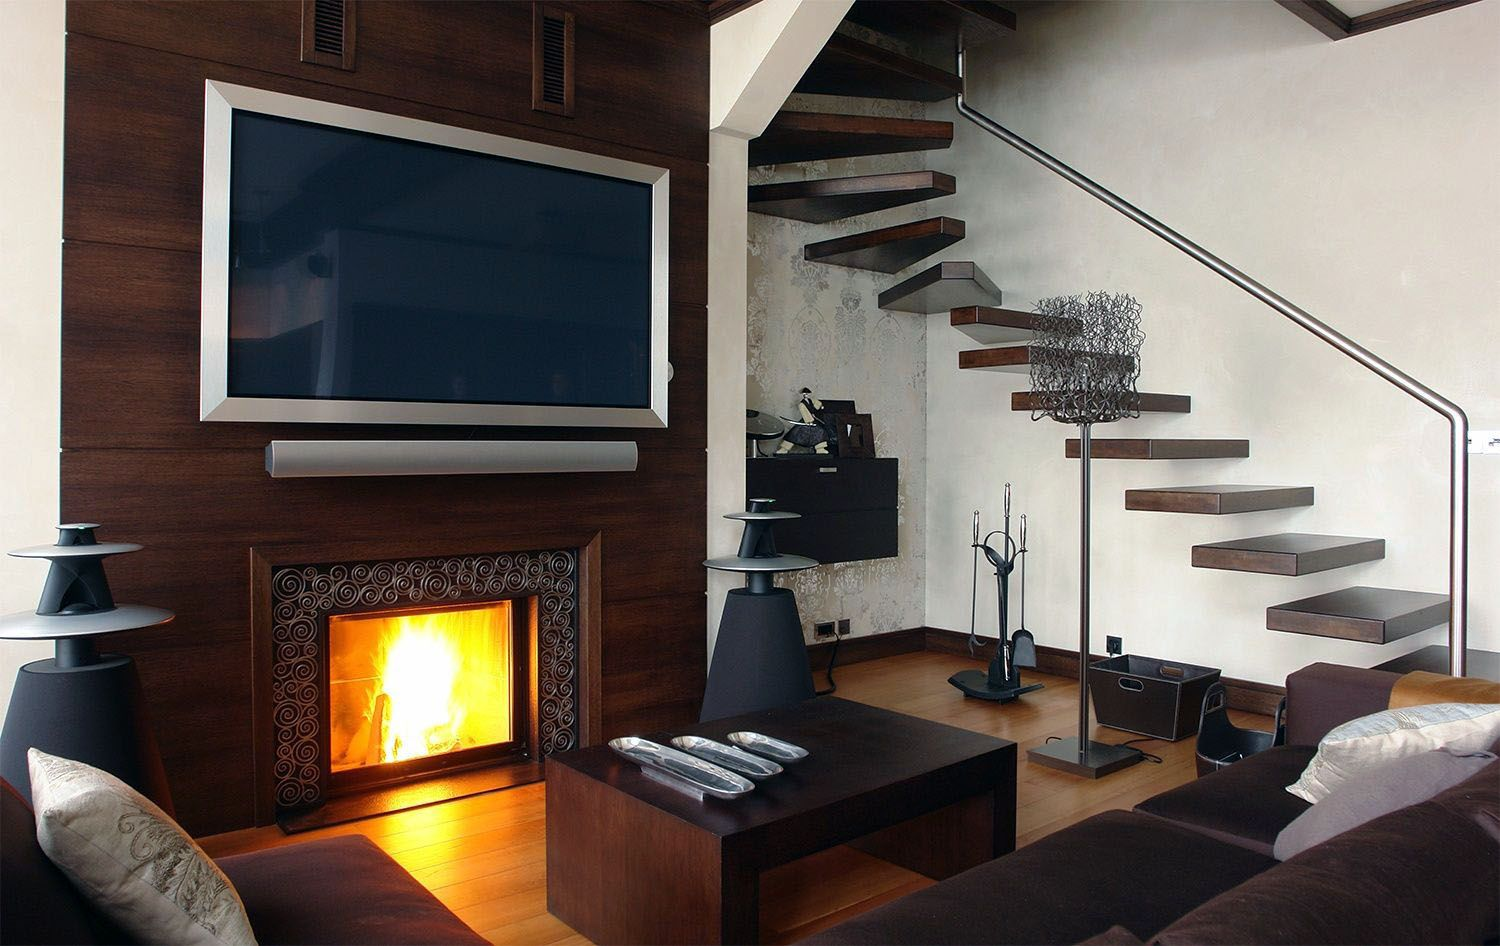 Savvy And Inspiring Decorating Ideas For Tv Over Fireplace You Ll Love Tv Above Fireplace Tv Over Fireplace Stairs Design Modern